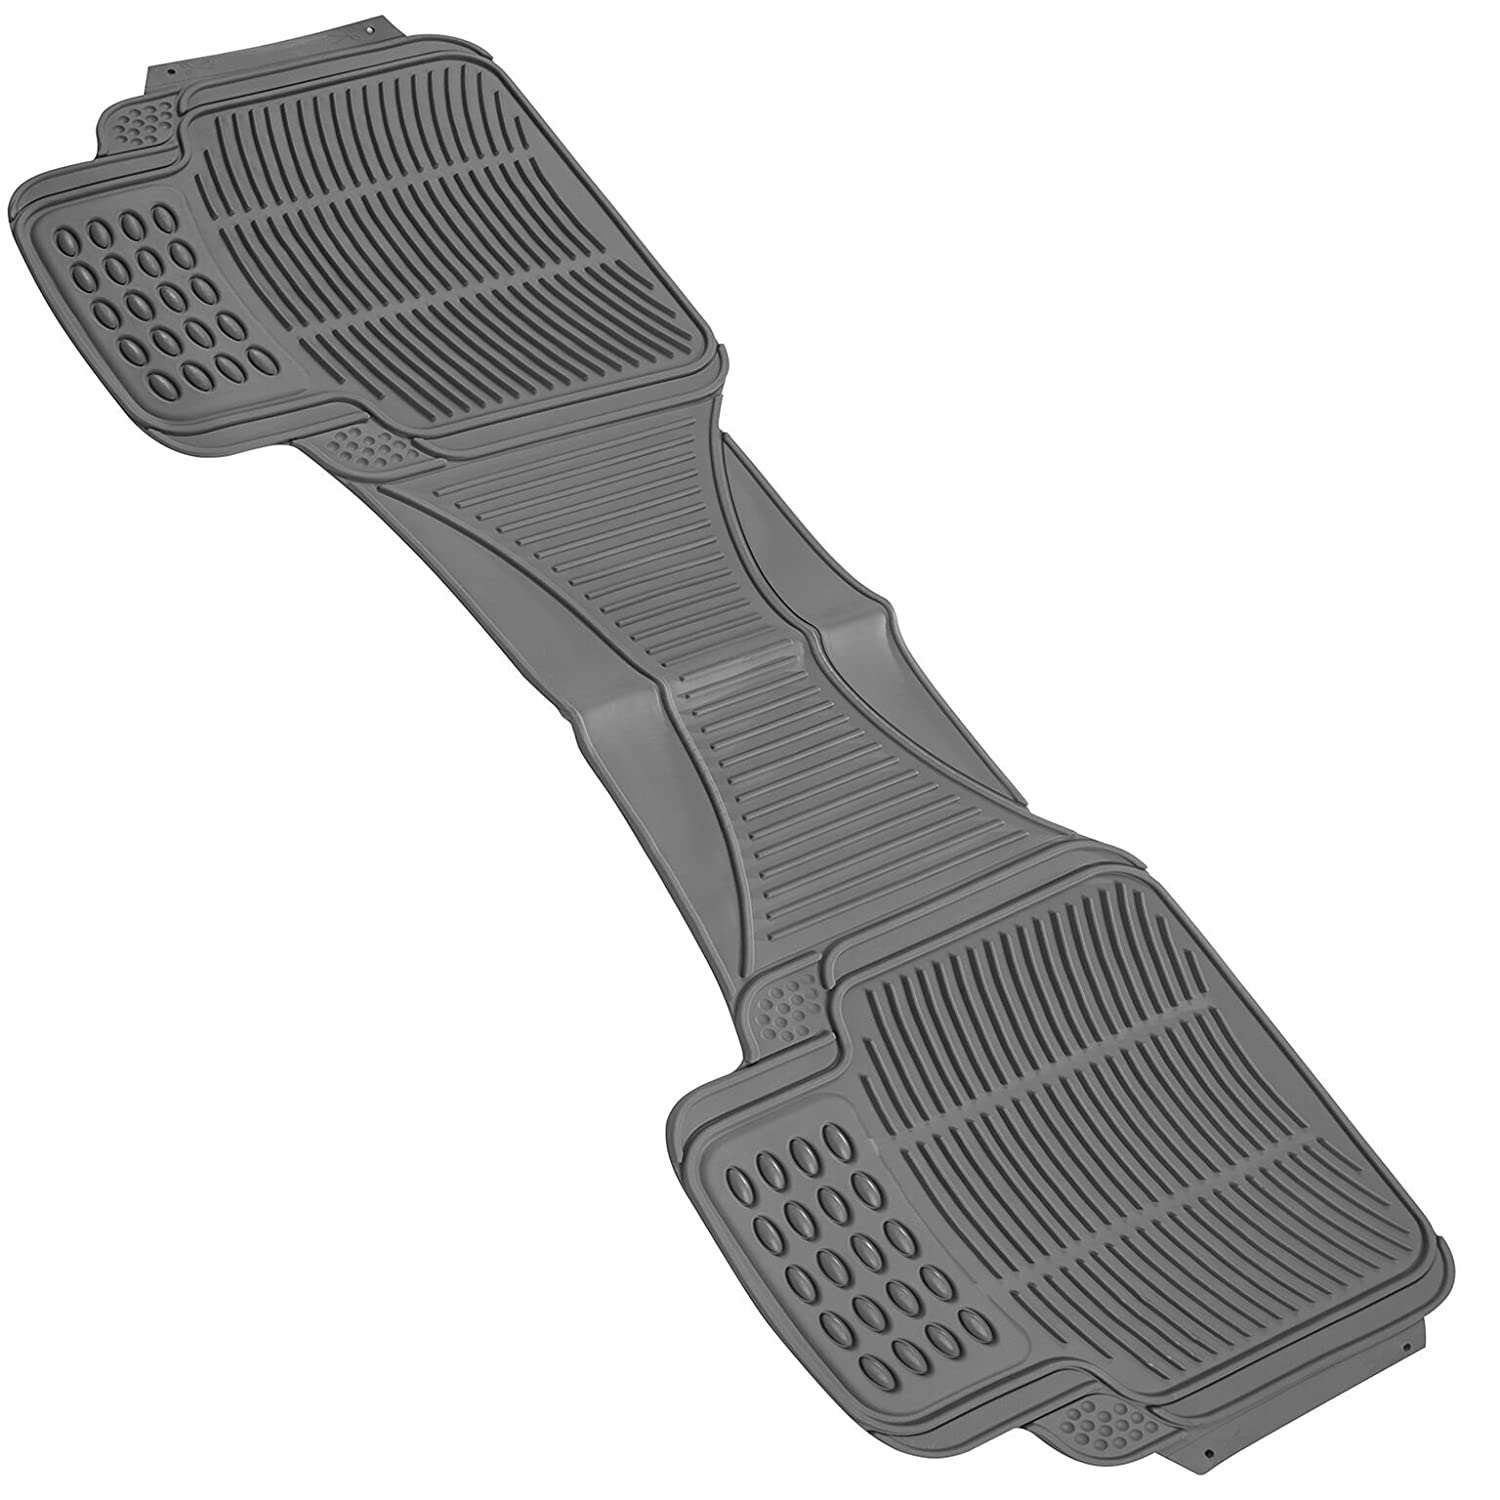 Johns FMR-21 (Runner) Gray All-Weather Rubber Floor Mats FMR-21-GY